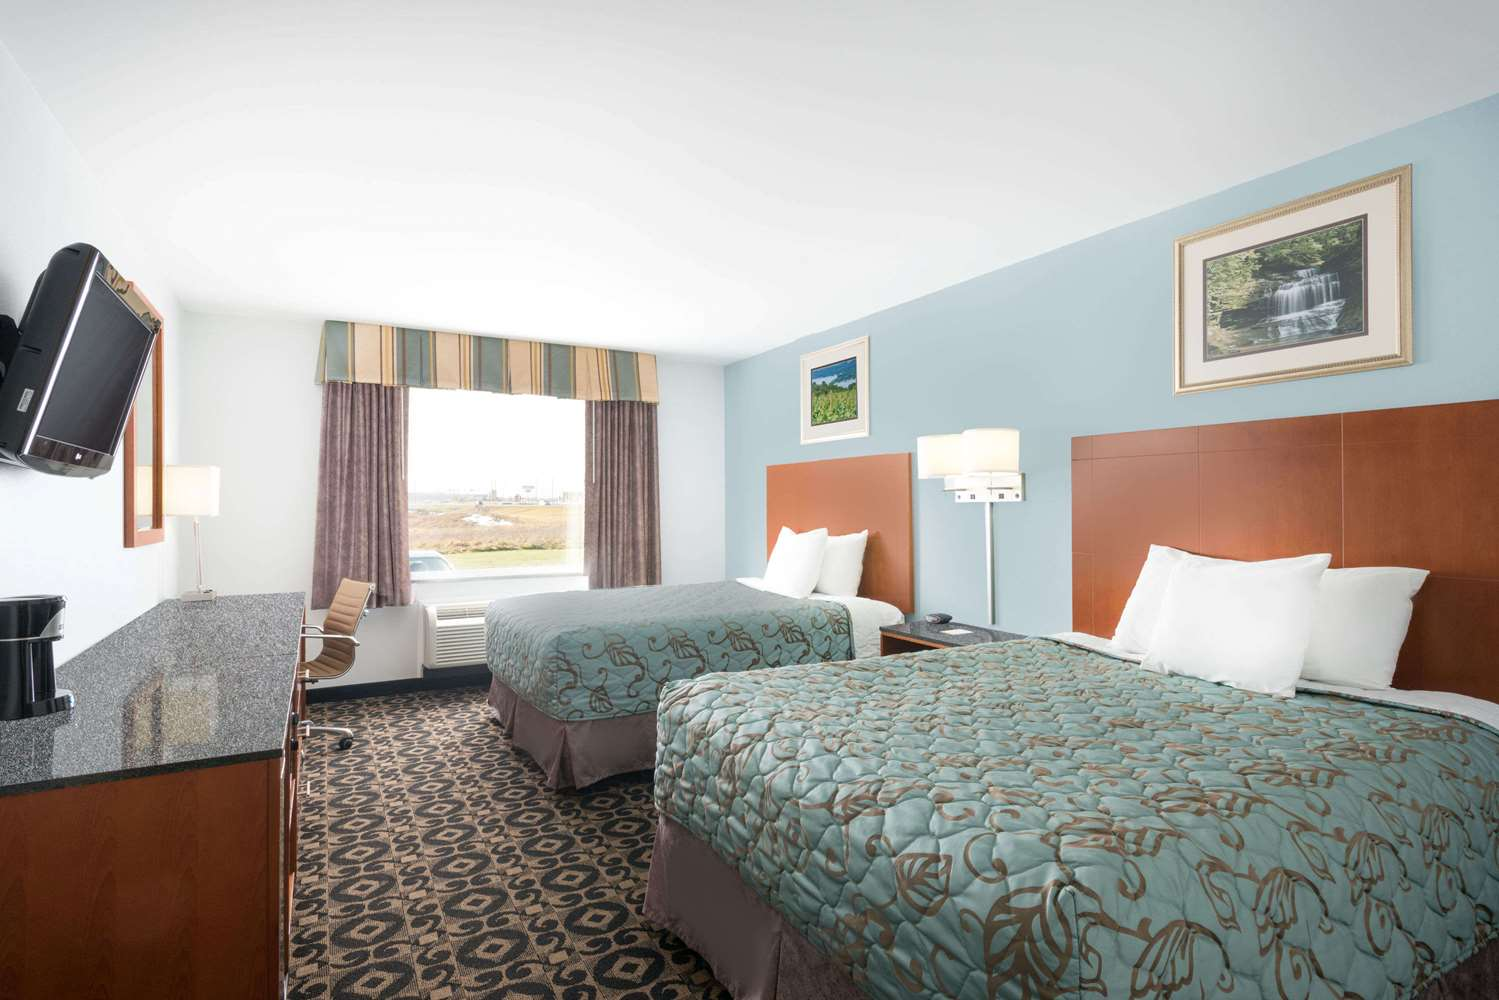 Days Inn Fort Drum Evans Mills, NY - See Discounts